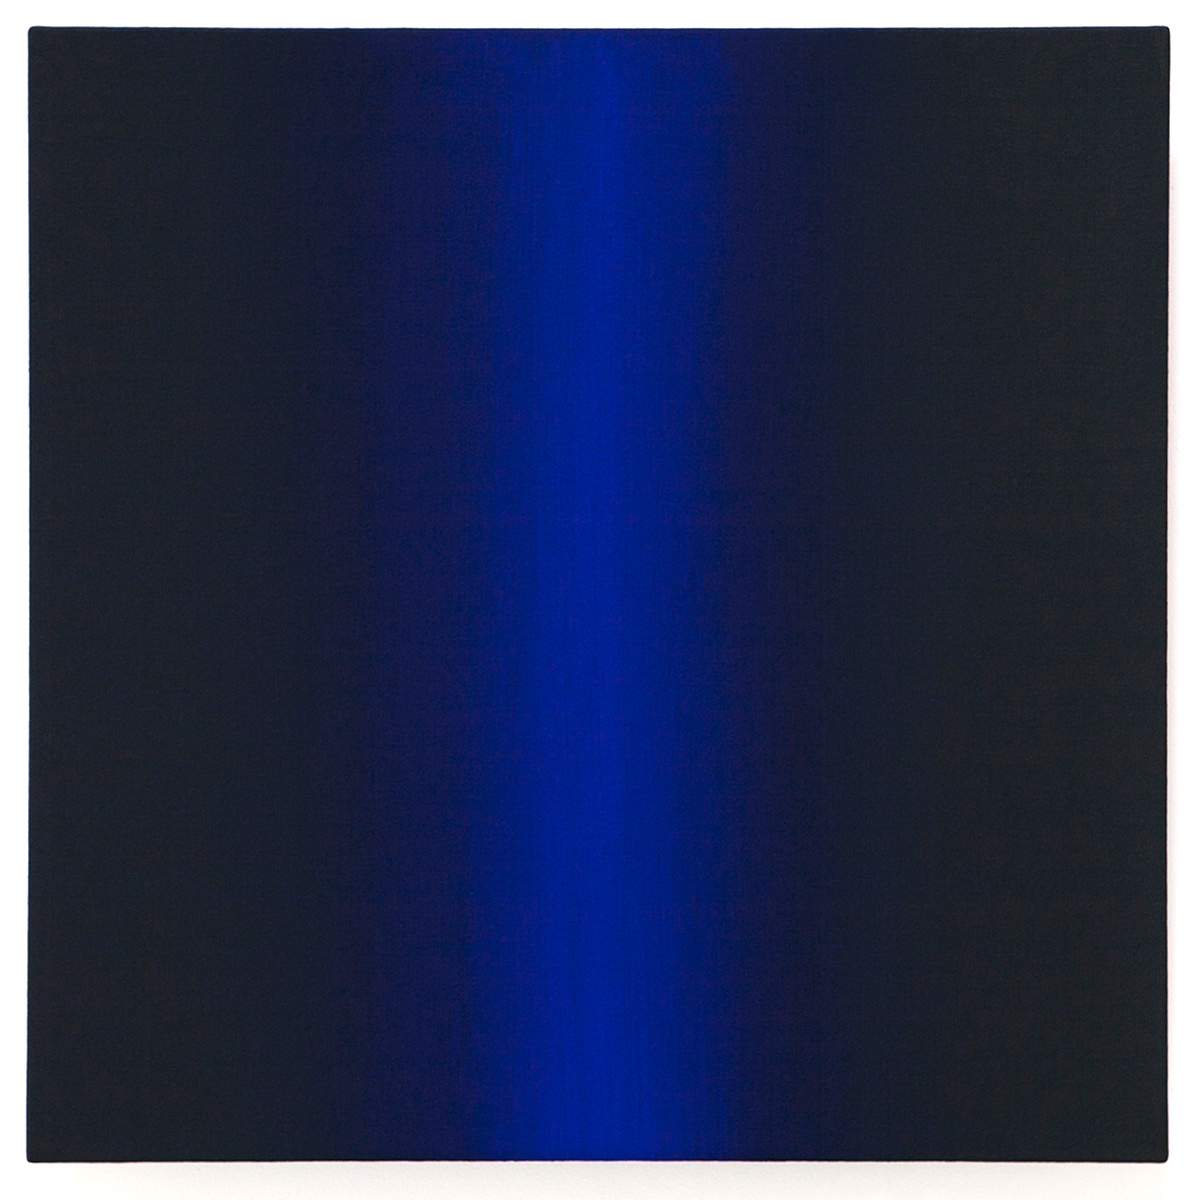 Dare (Blue Orange), Present Fugitive Series, 2010, oil on canvas on custom beveled stretcher, 24 x 24 x 3 in. (61 x 61 x 7 cm.)